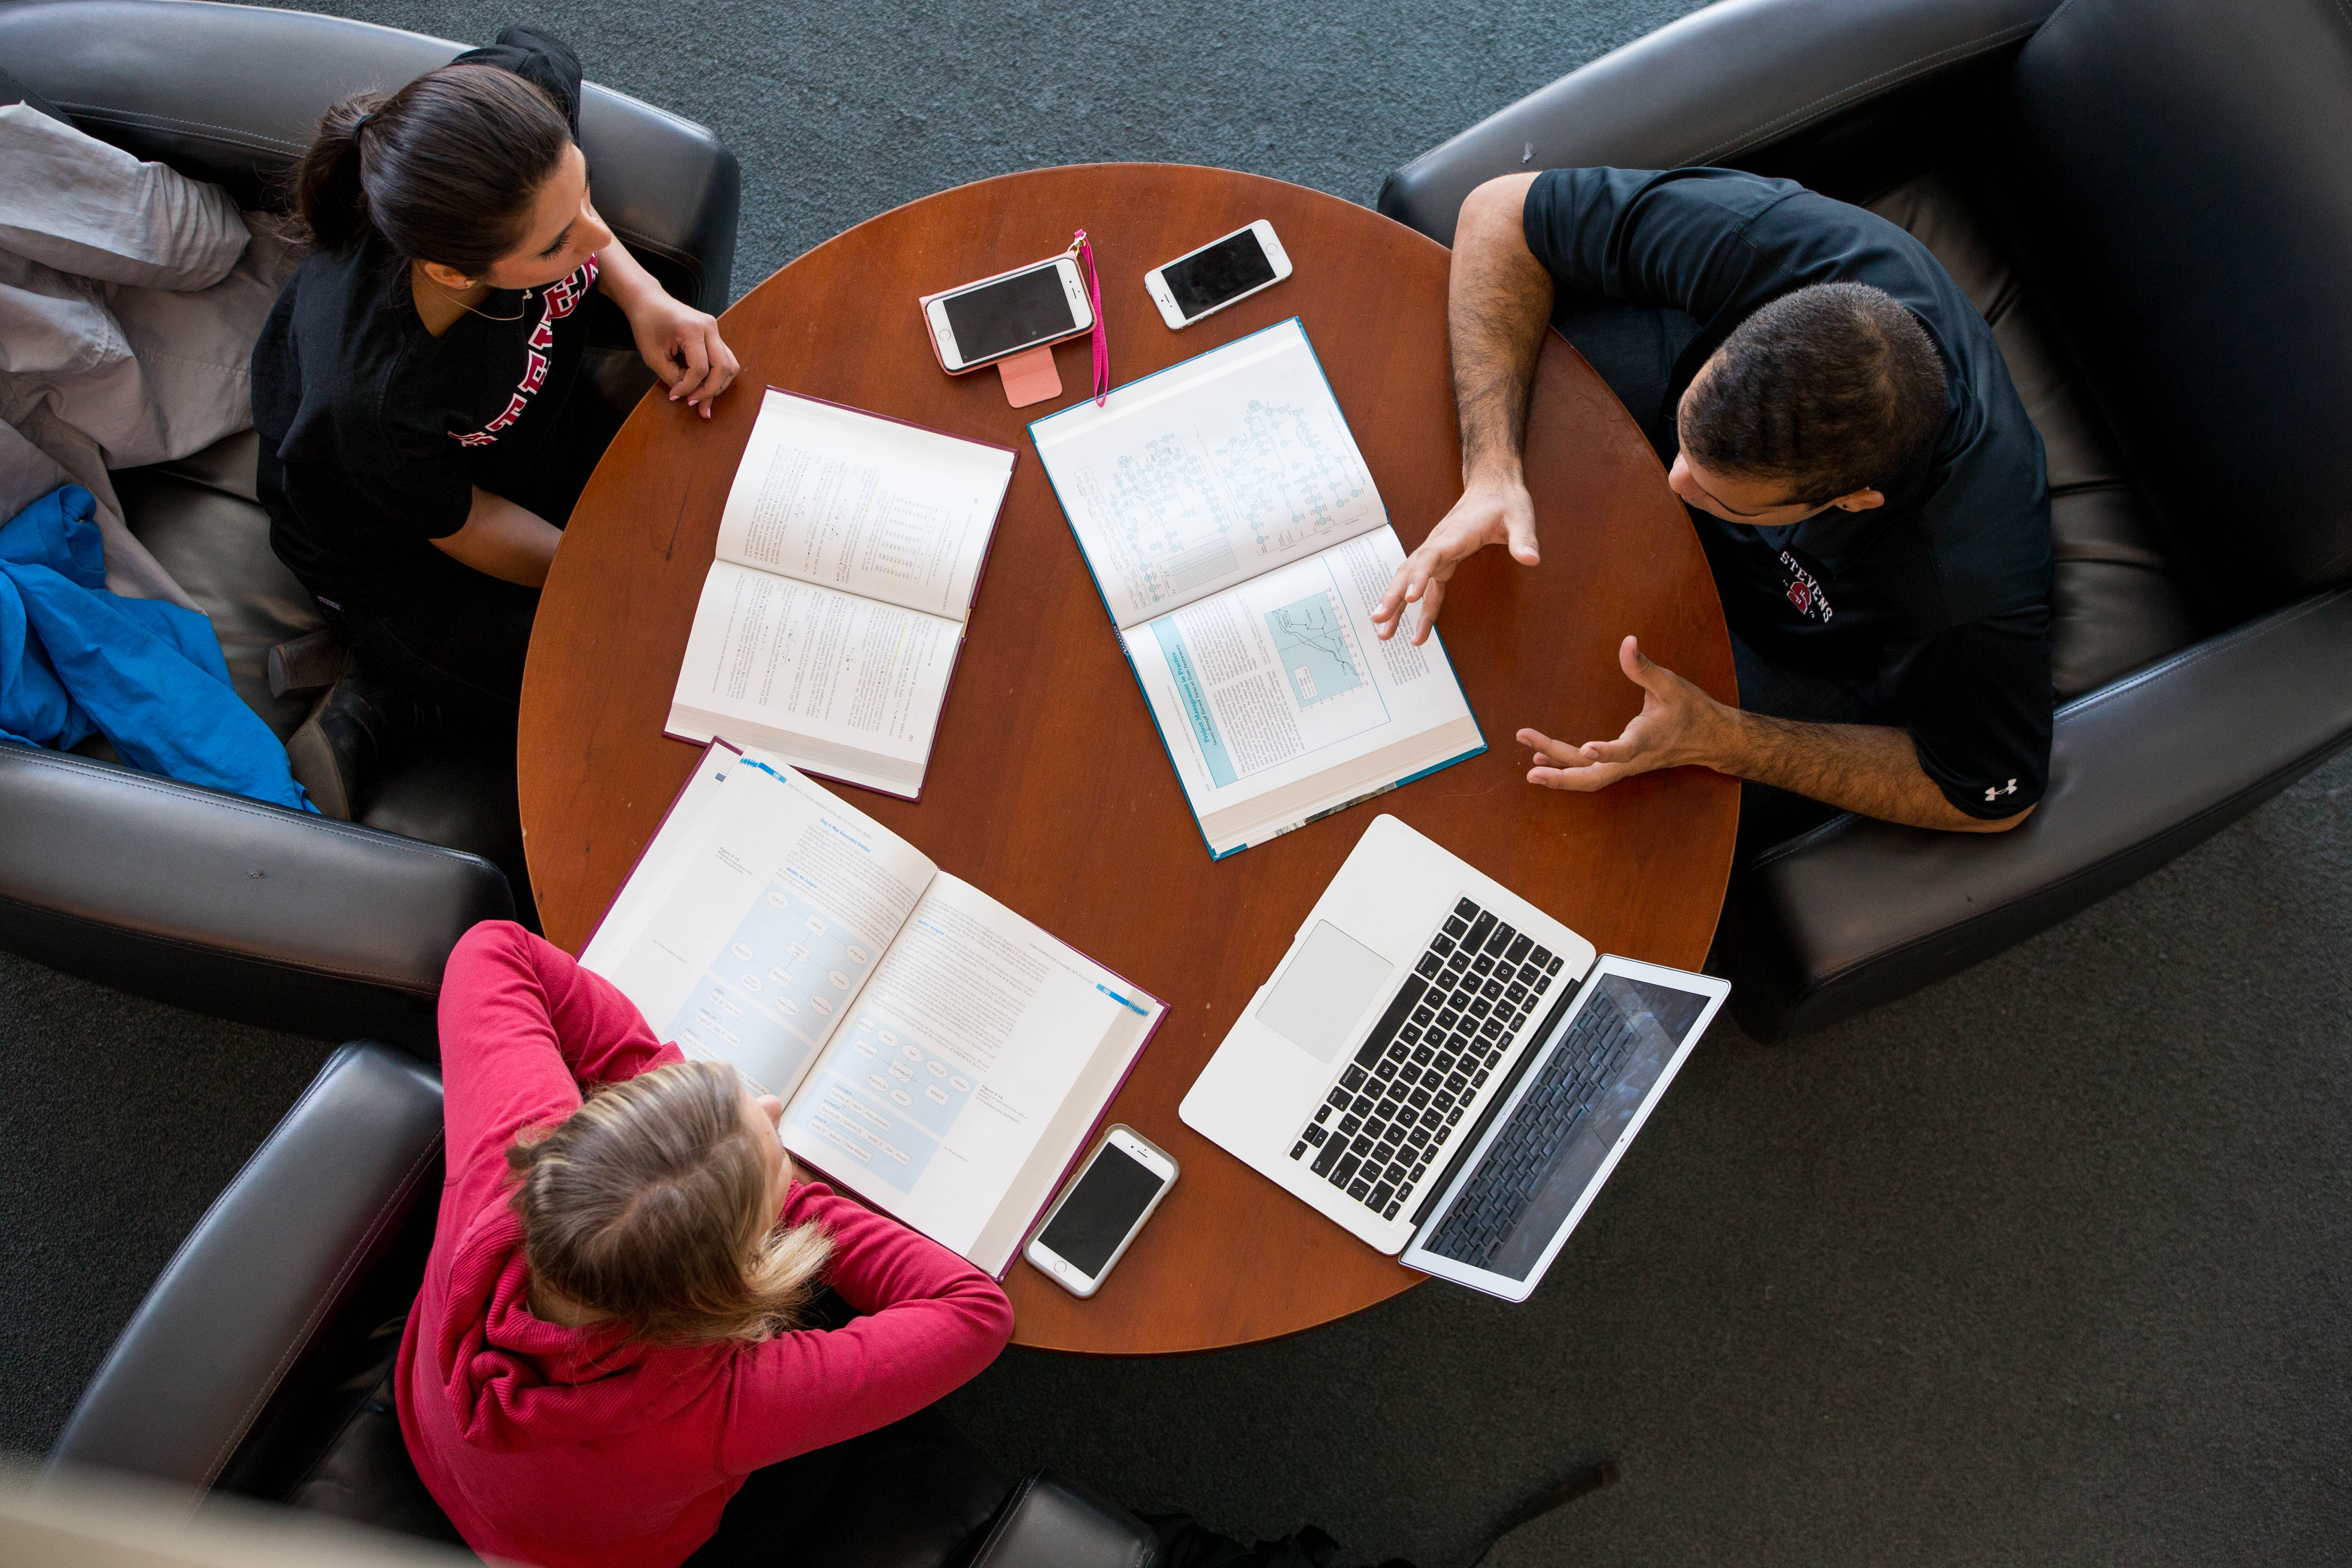 Students study at round table